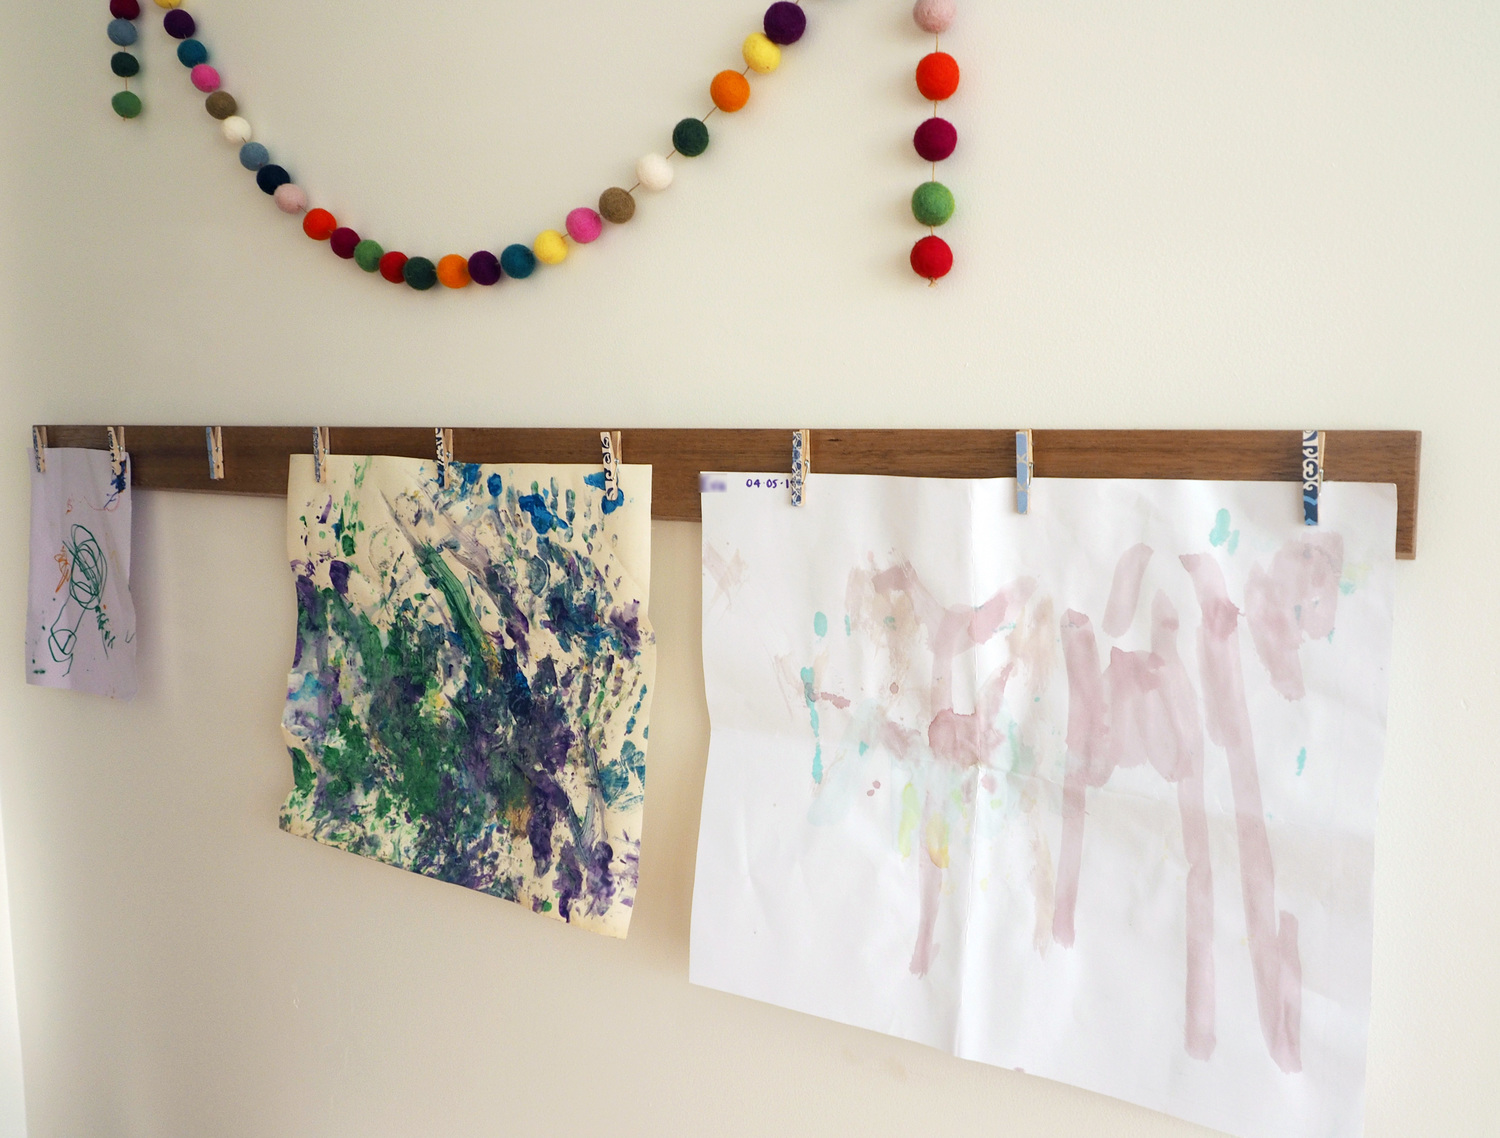 A cute artwork display in a child's bedroom